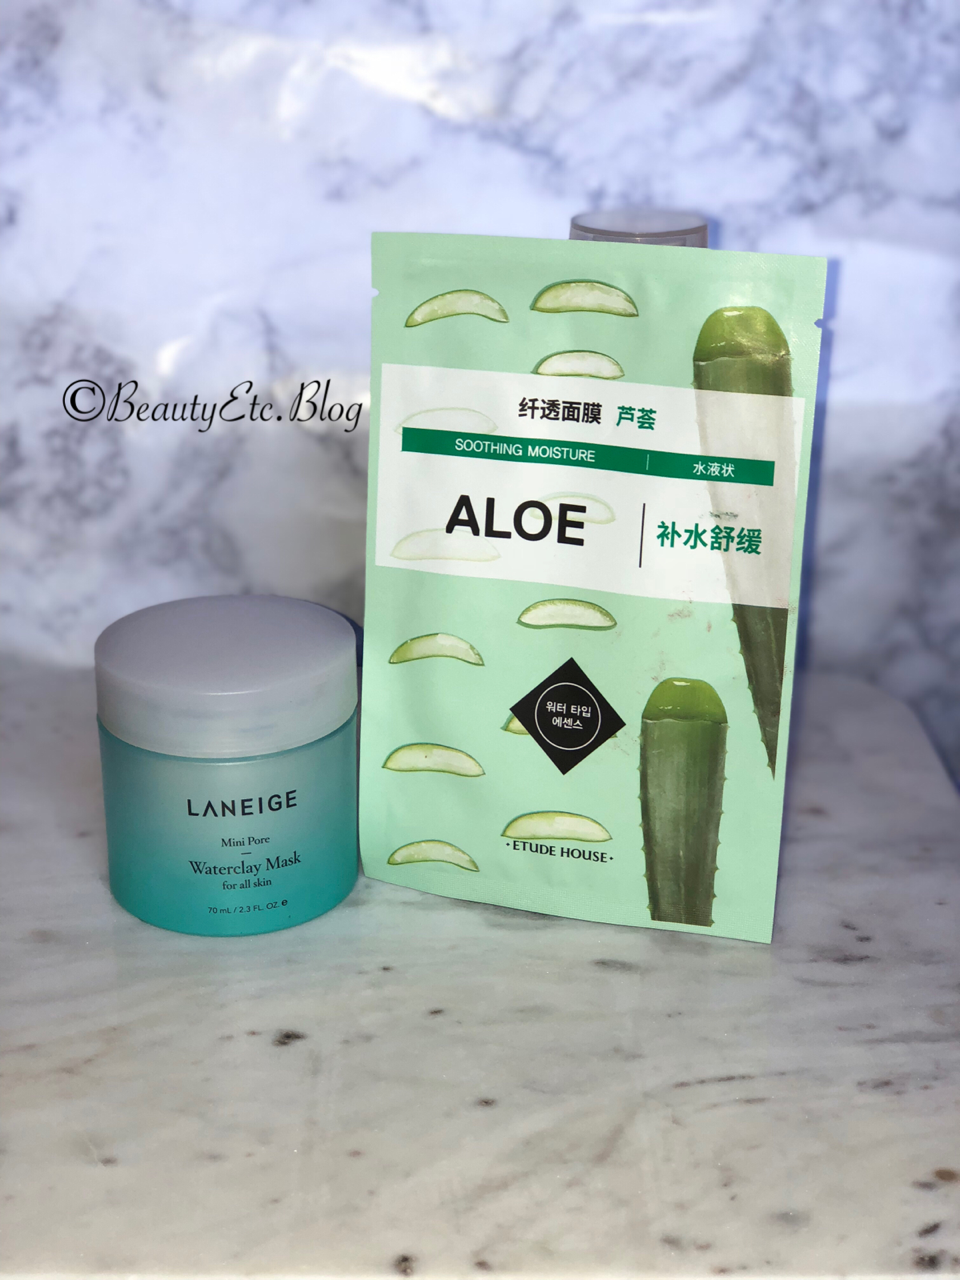 Laniege Mini Pore Water Clay Mask  $25 |   Etude House Sheet Mask $1-$2 per mask